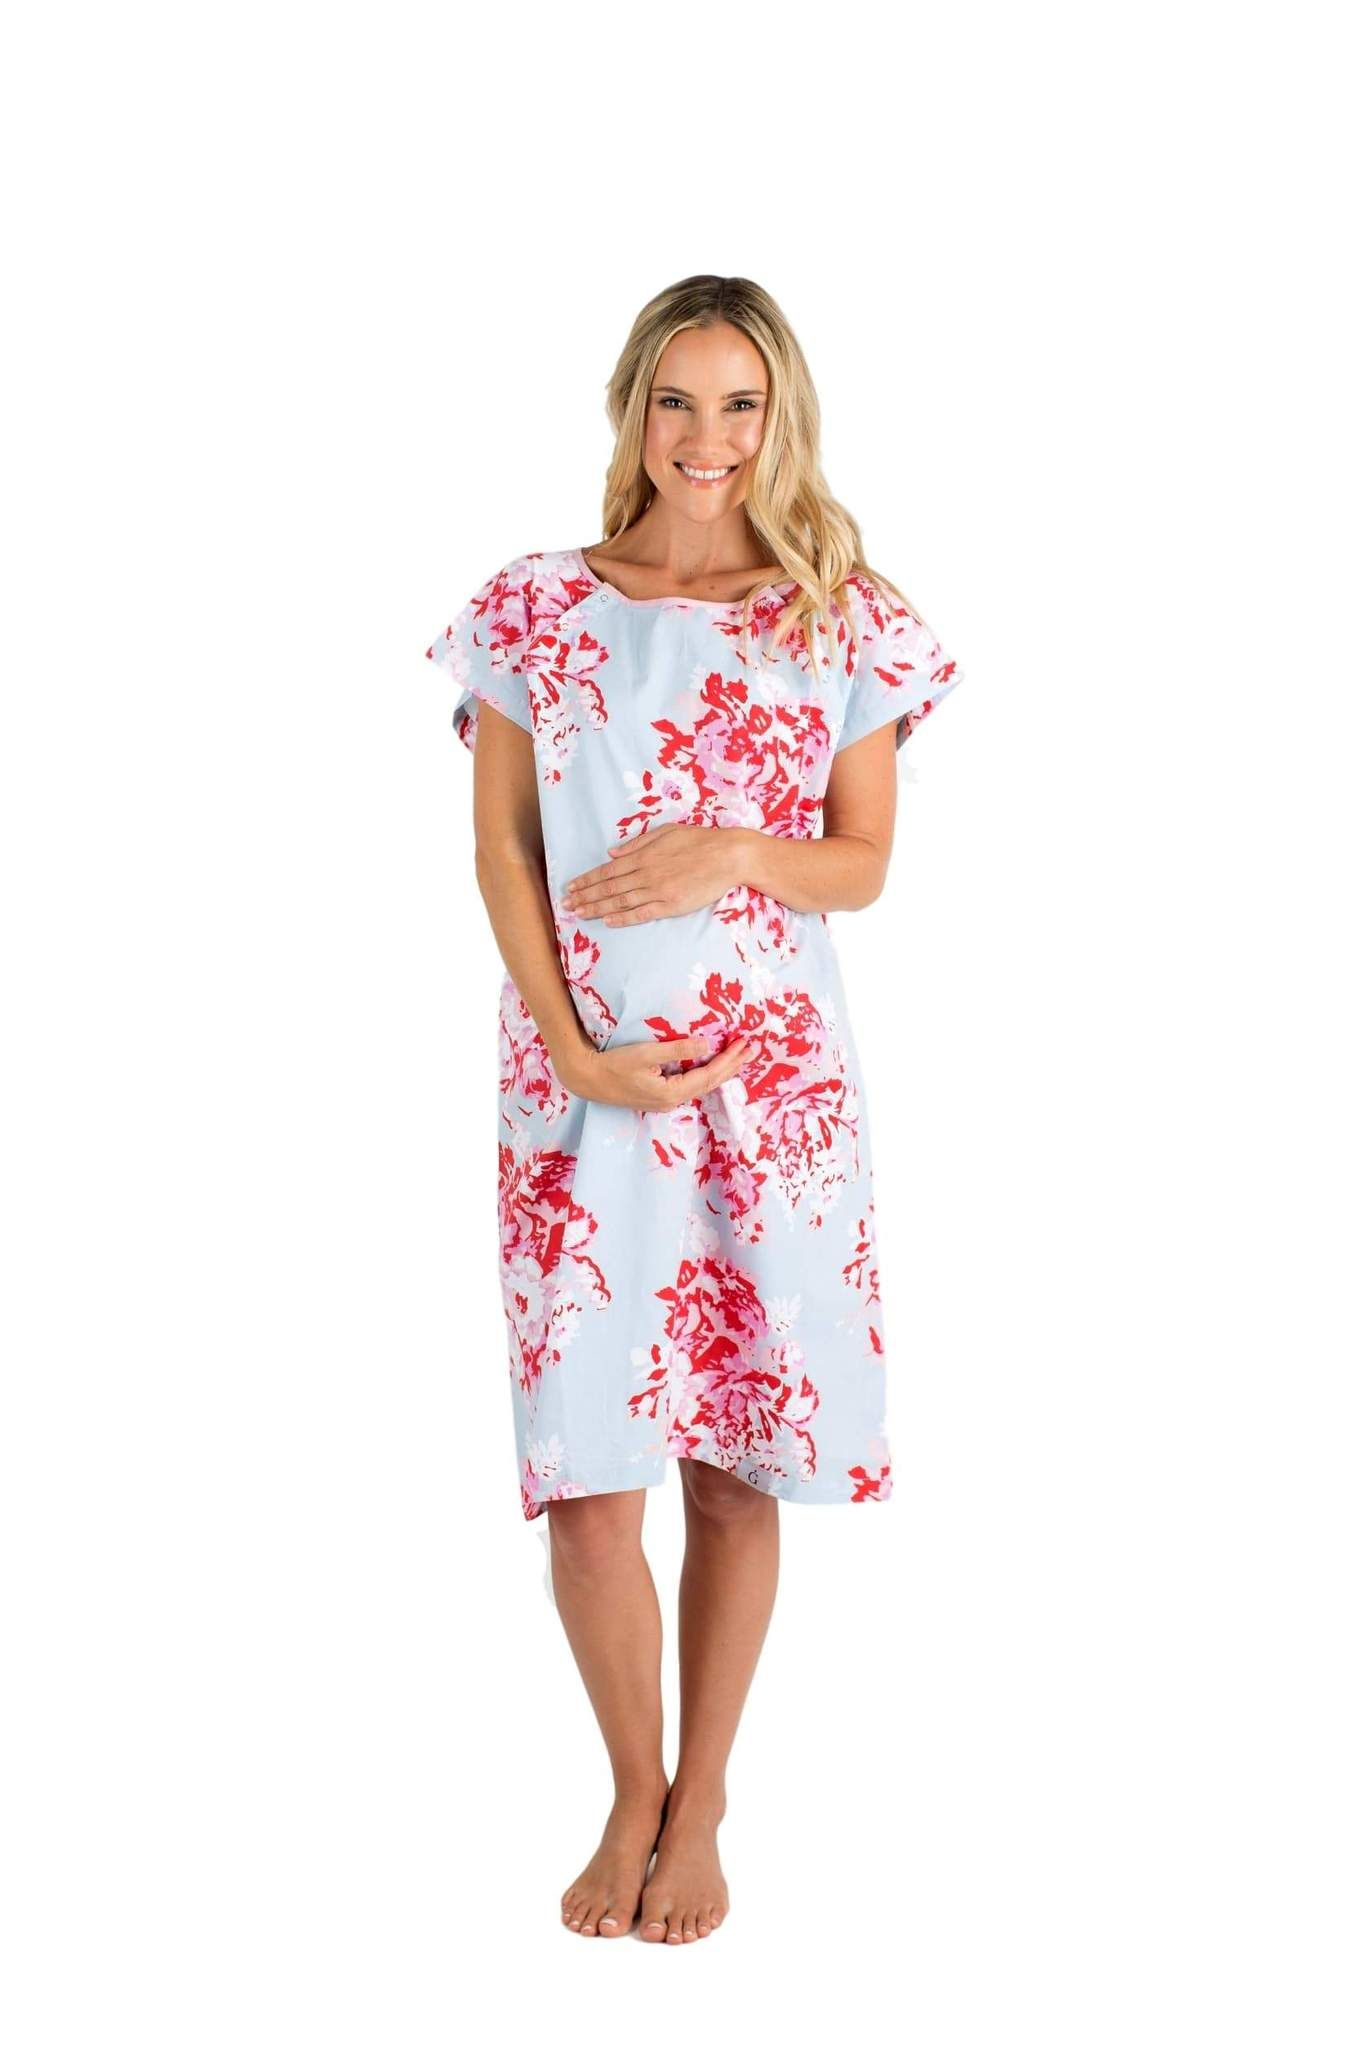 a6fdbf858df83 Mae Gownie Maternity Delivery Labor Hospital Birthing Gown | Adia ...